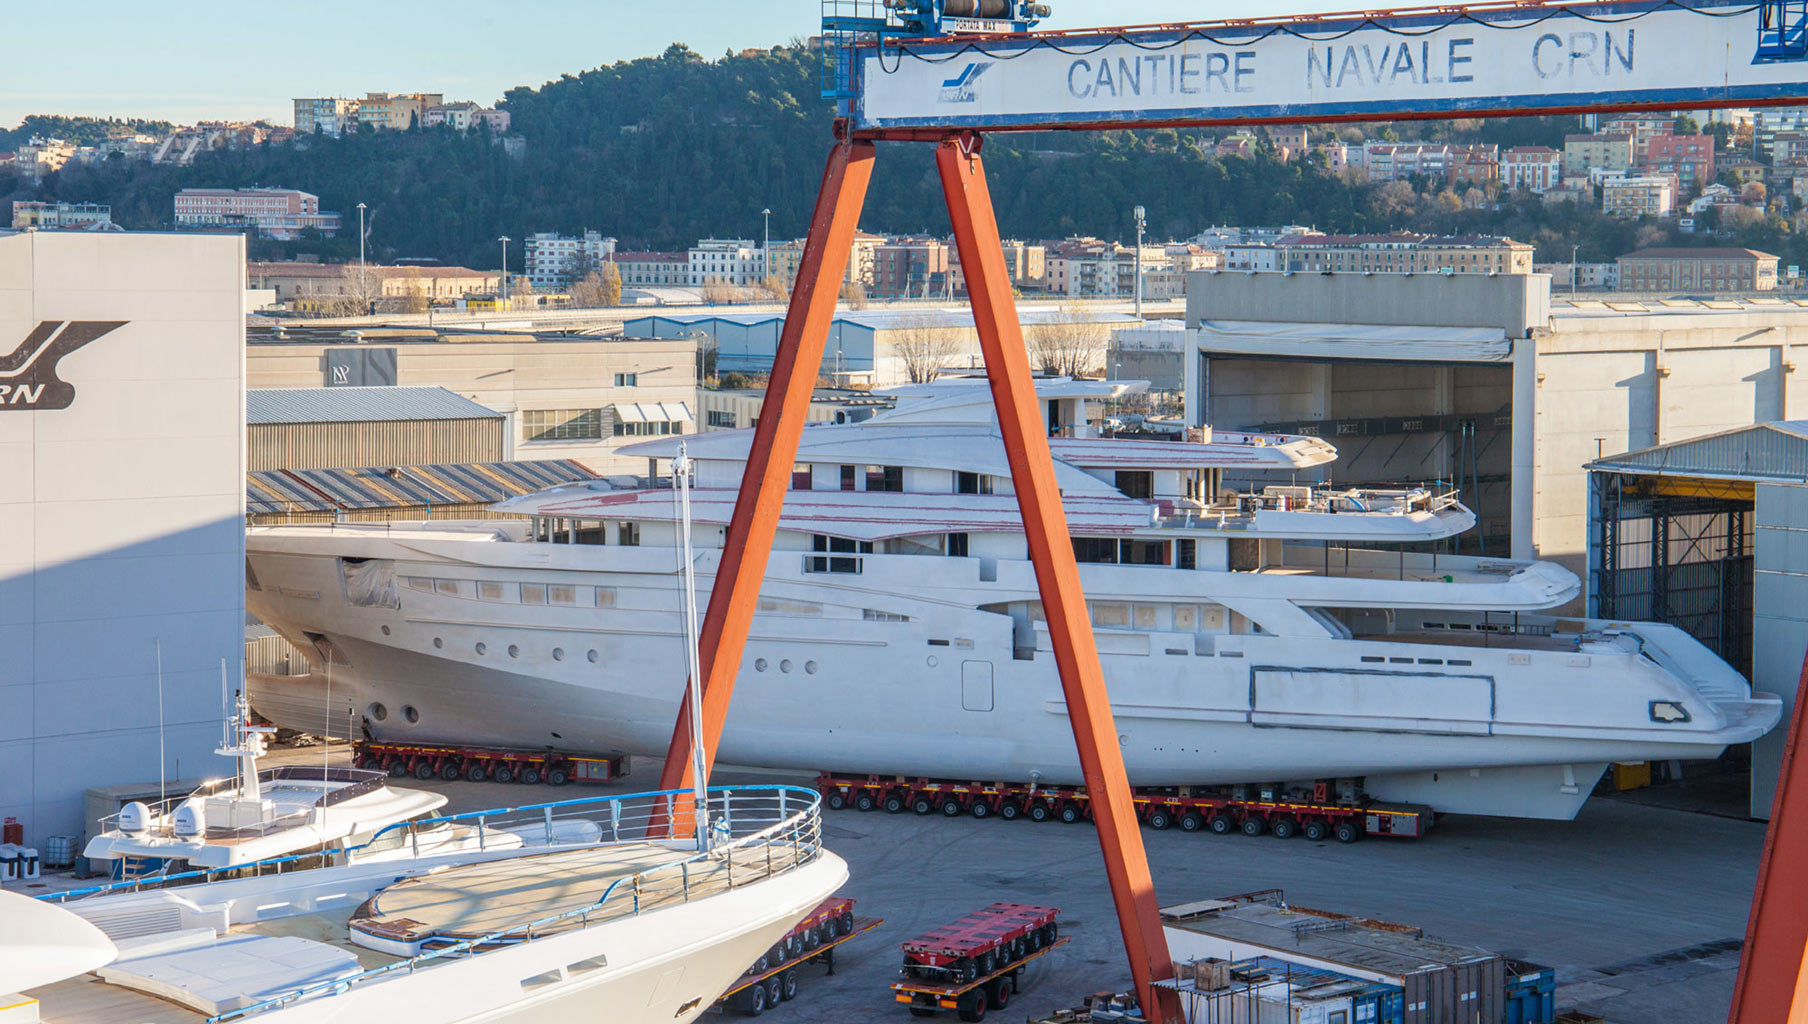 CRN provides first look at 79m superyacht project.